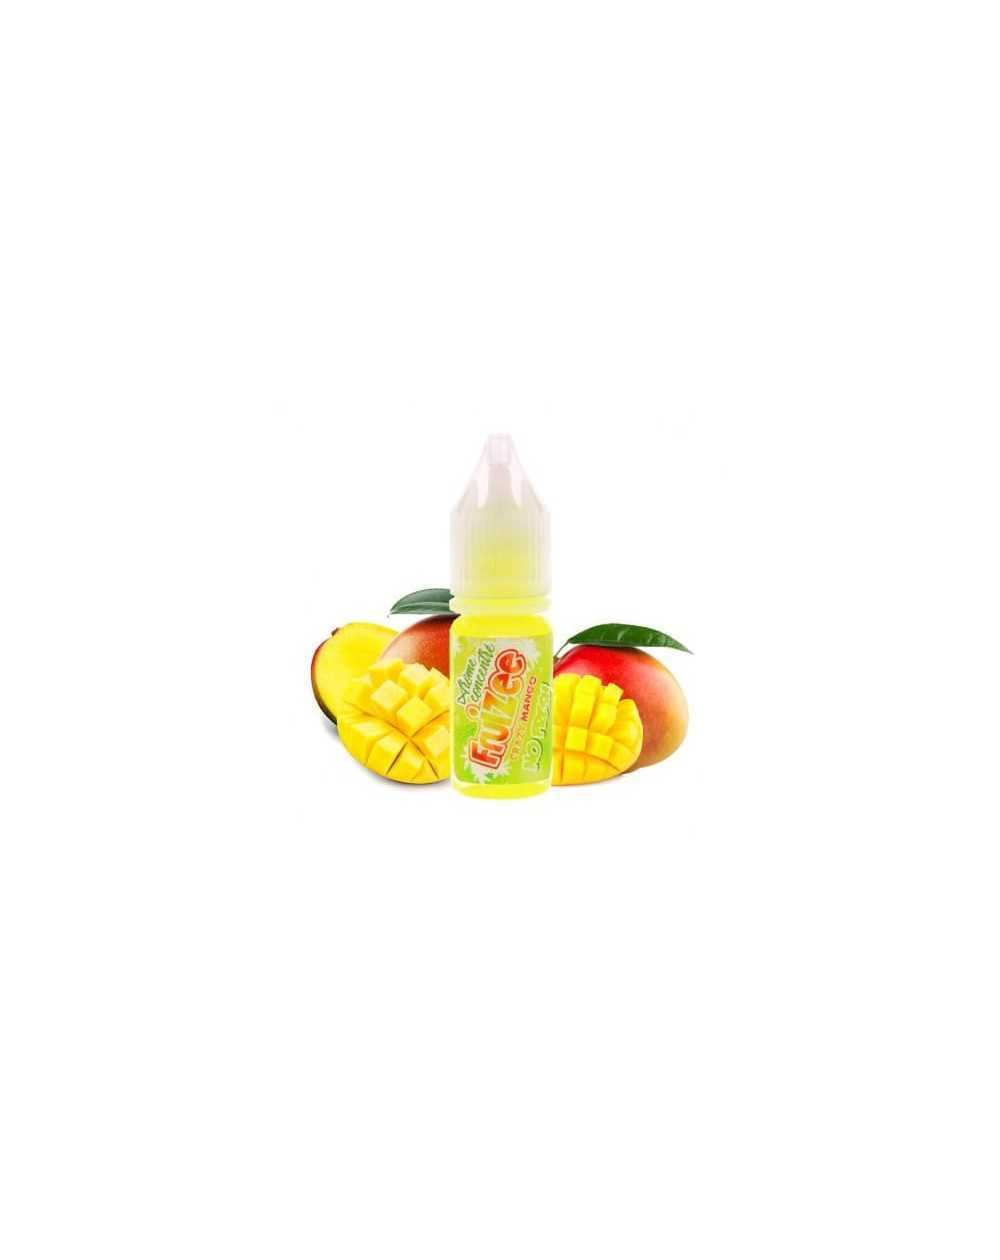 Concentrated aroma Crazy Mango No Fresh 10ml - Fruizee of Eliquid France-1